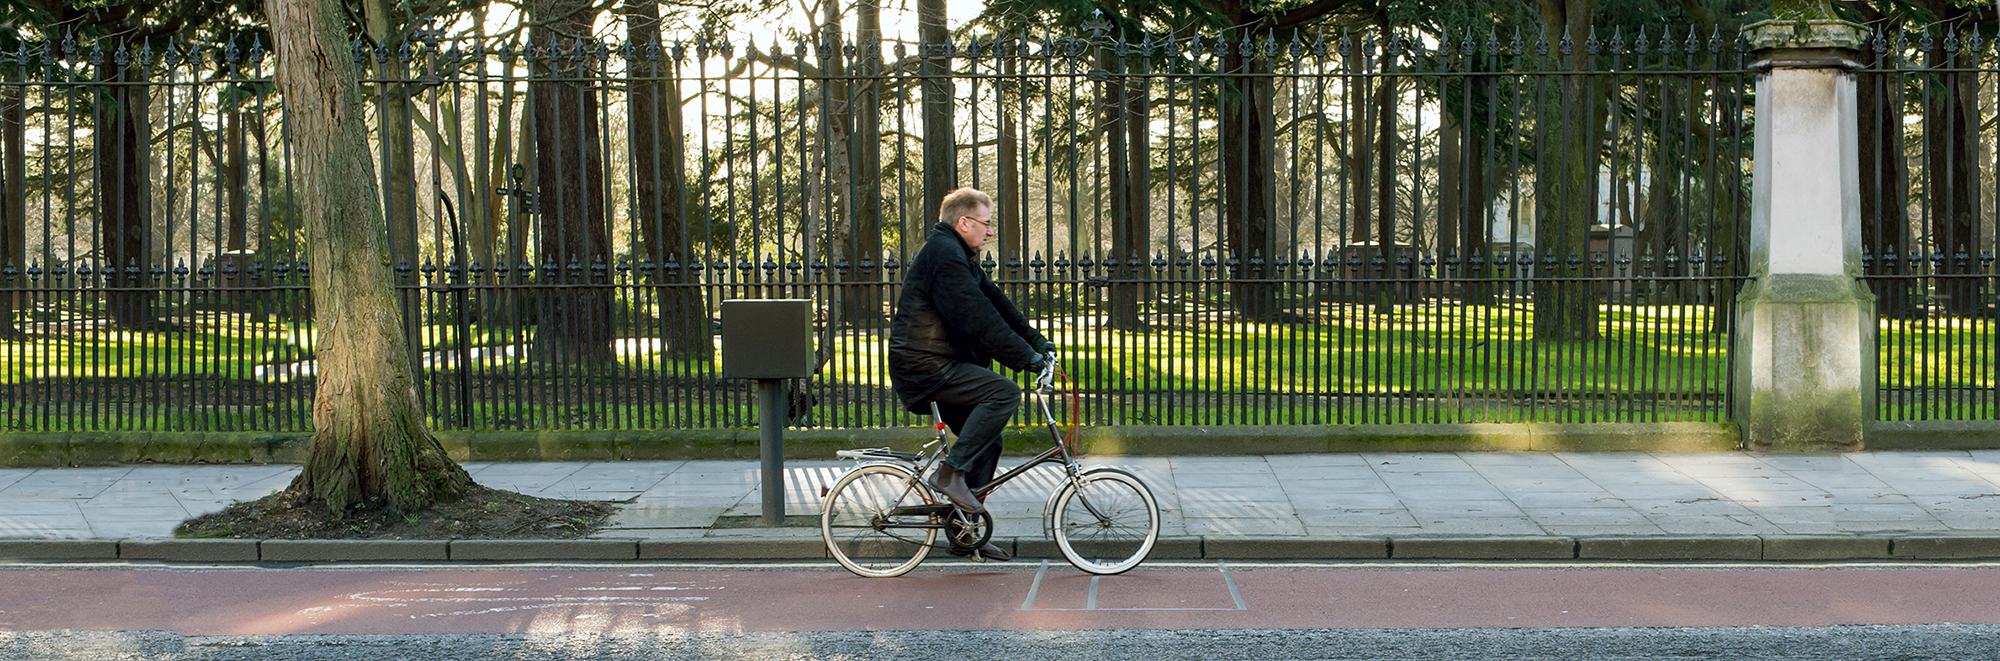 Permanent Cyclists Monitor